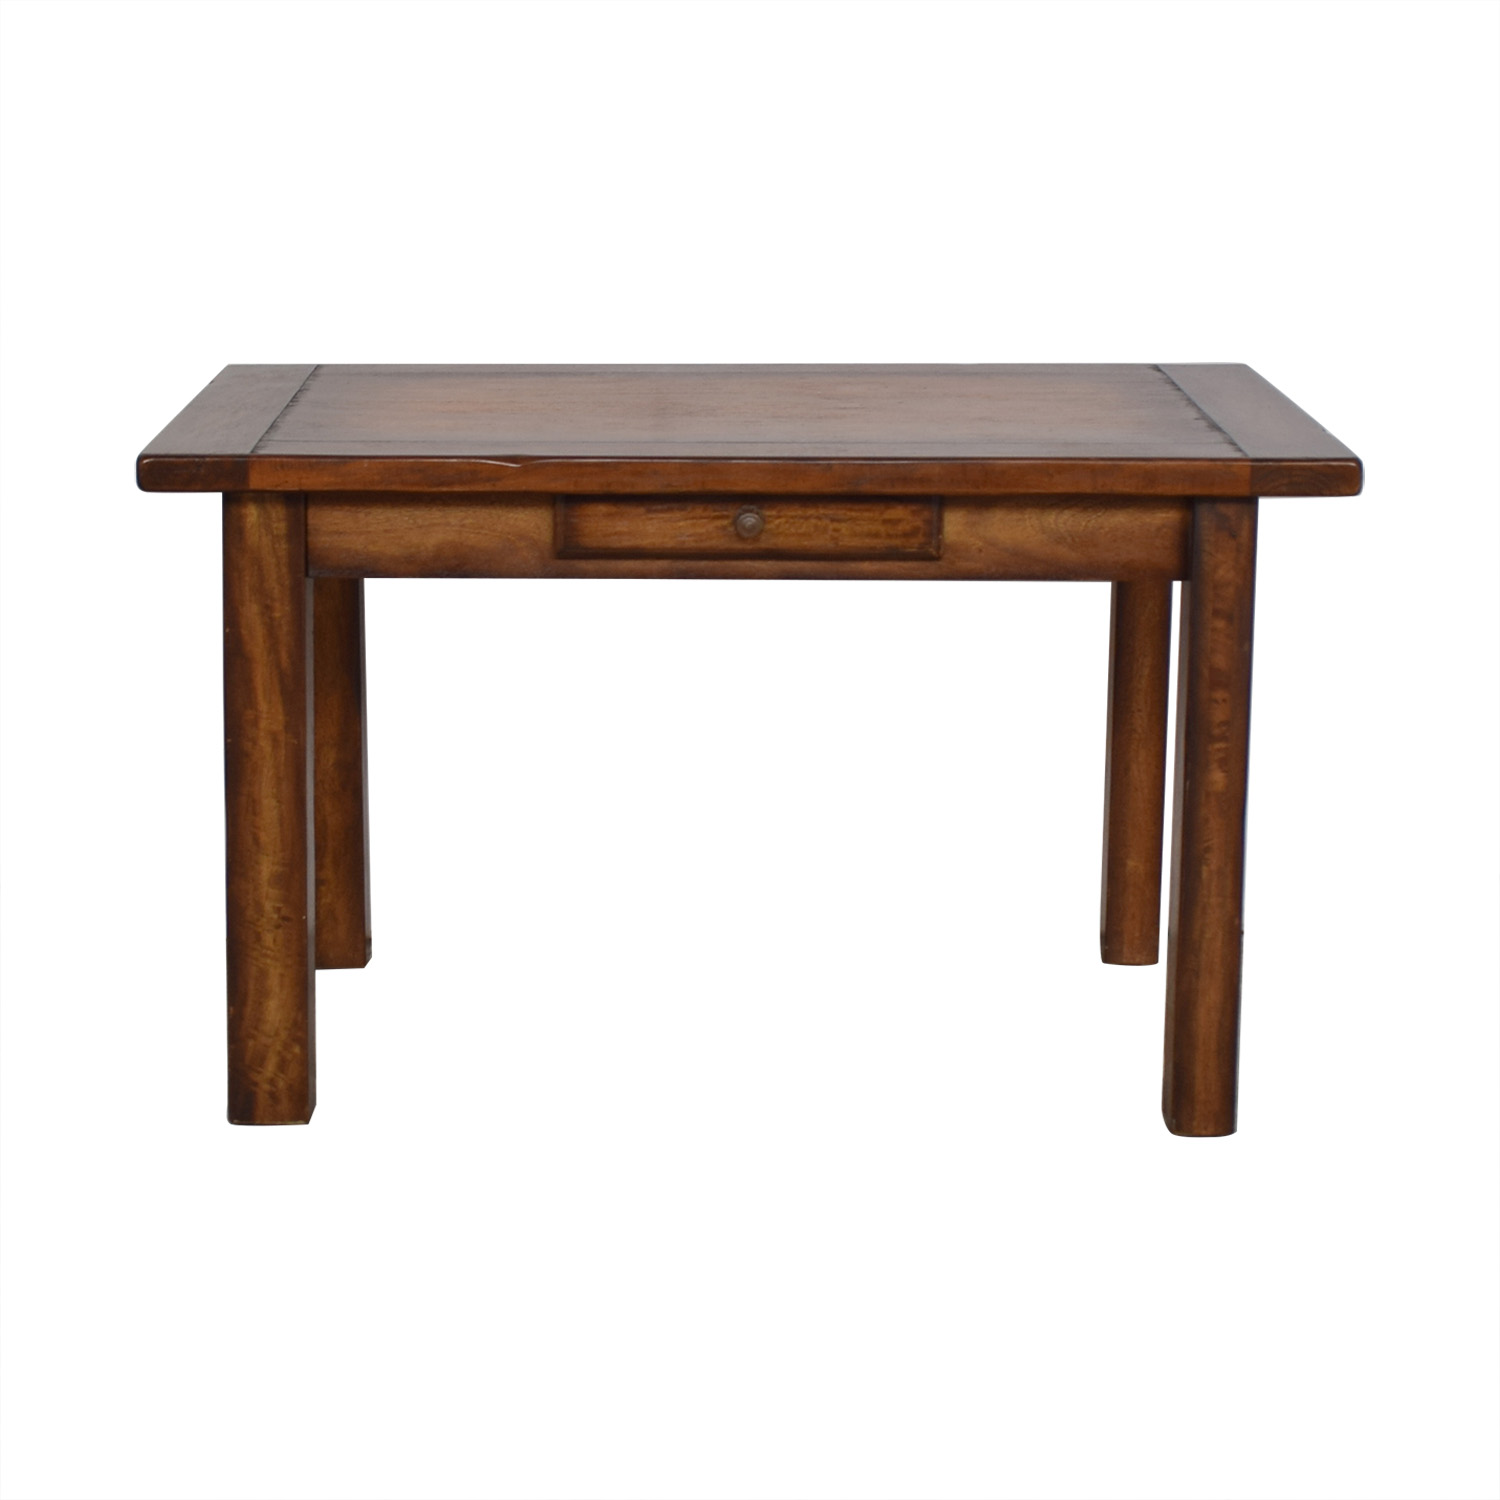 ABC Carpet & Home ABC Carpet & Home French Heritage Dining Table Brown